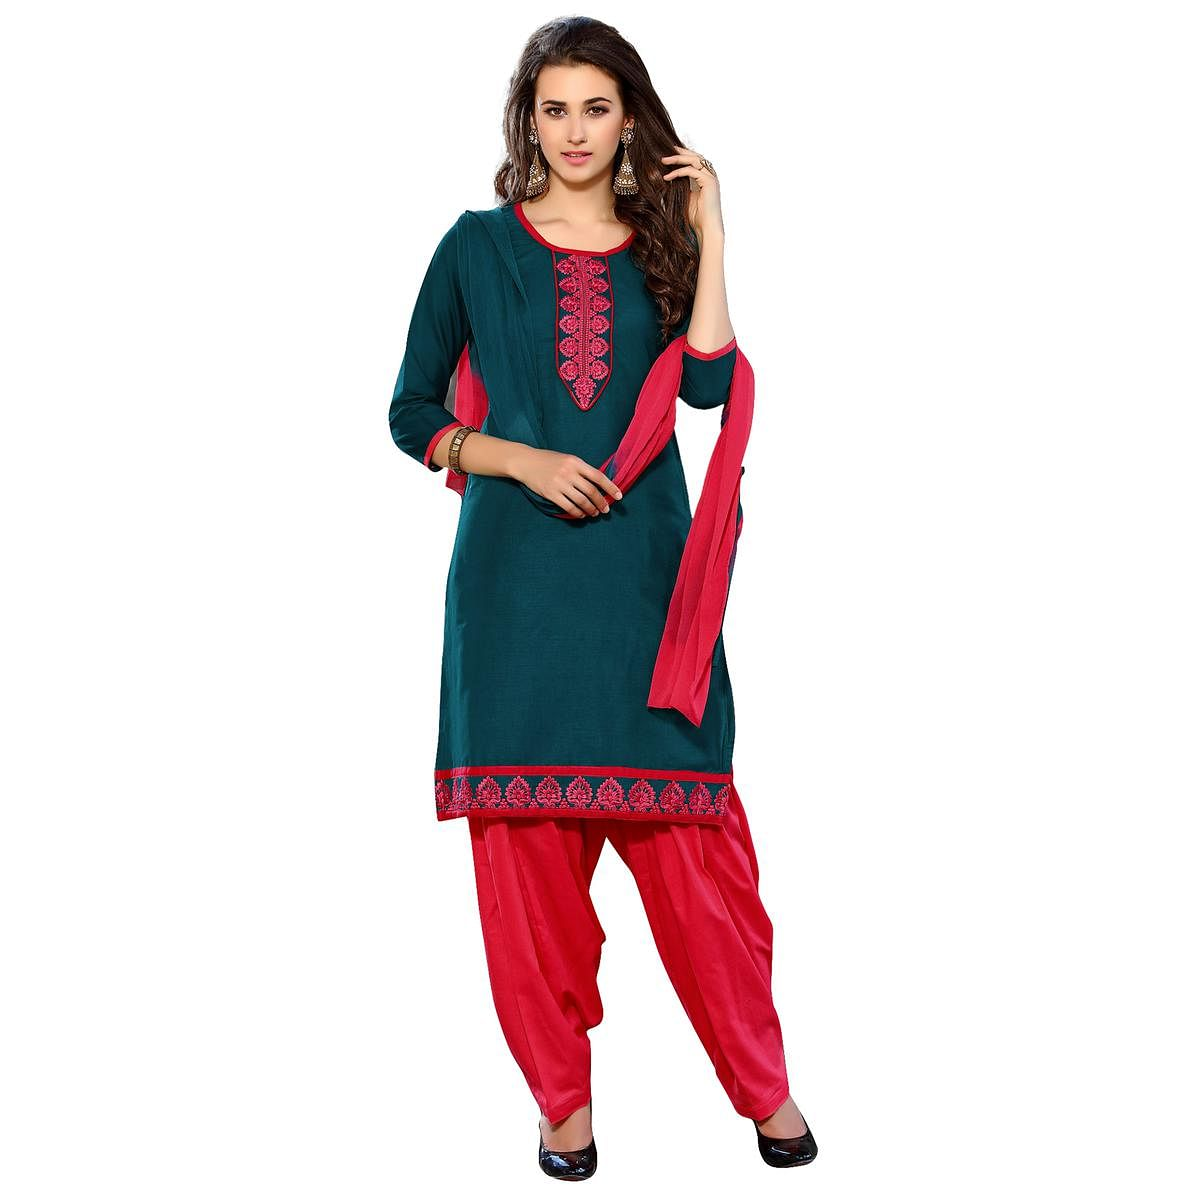 Marvellous Teal Blue Colored Embroidered Casual Wear Cotton Dress Material